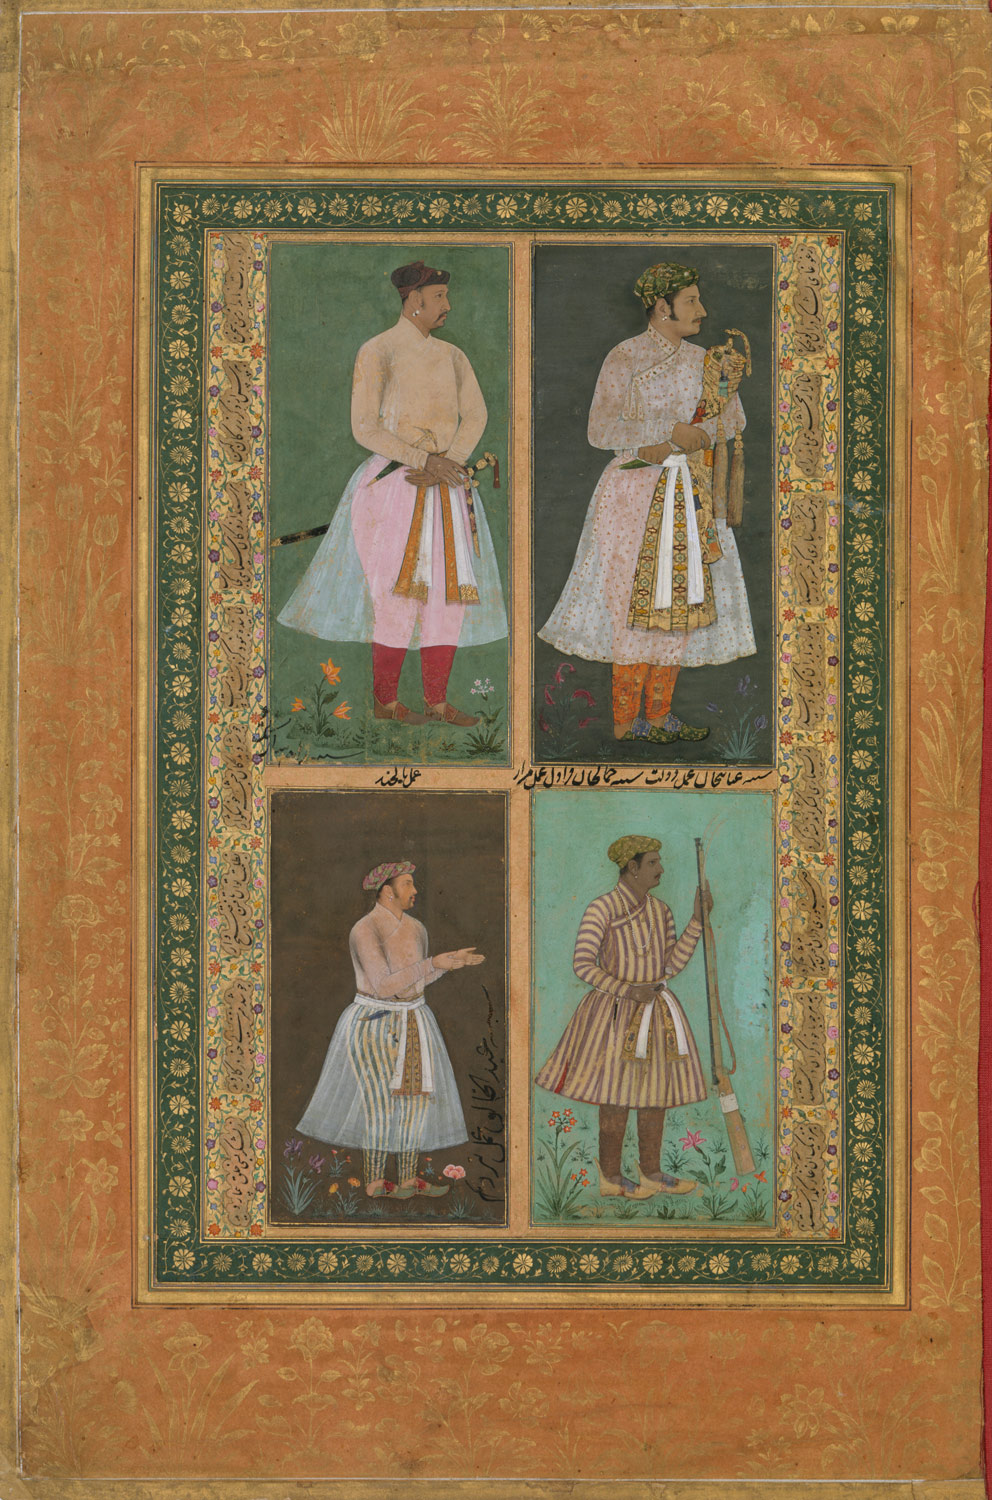 Four Portraits: (upper left) A Raja (Perhaps Raja Sarang Rao), by Balchand; (upper right) Inayat Khan, by Daulat; (lower left) Abd al-Khaliq, probably by Balchand; (lower right) Jamal Khan Qaravul, by Murad, Folio from the Shah Jahan Album